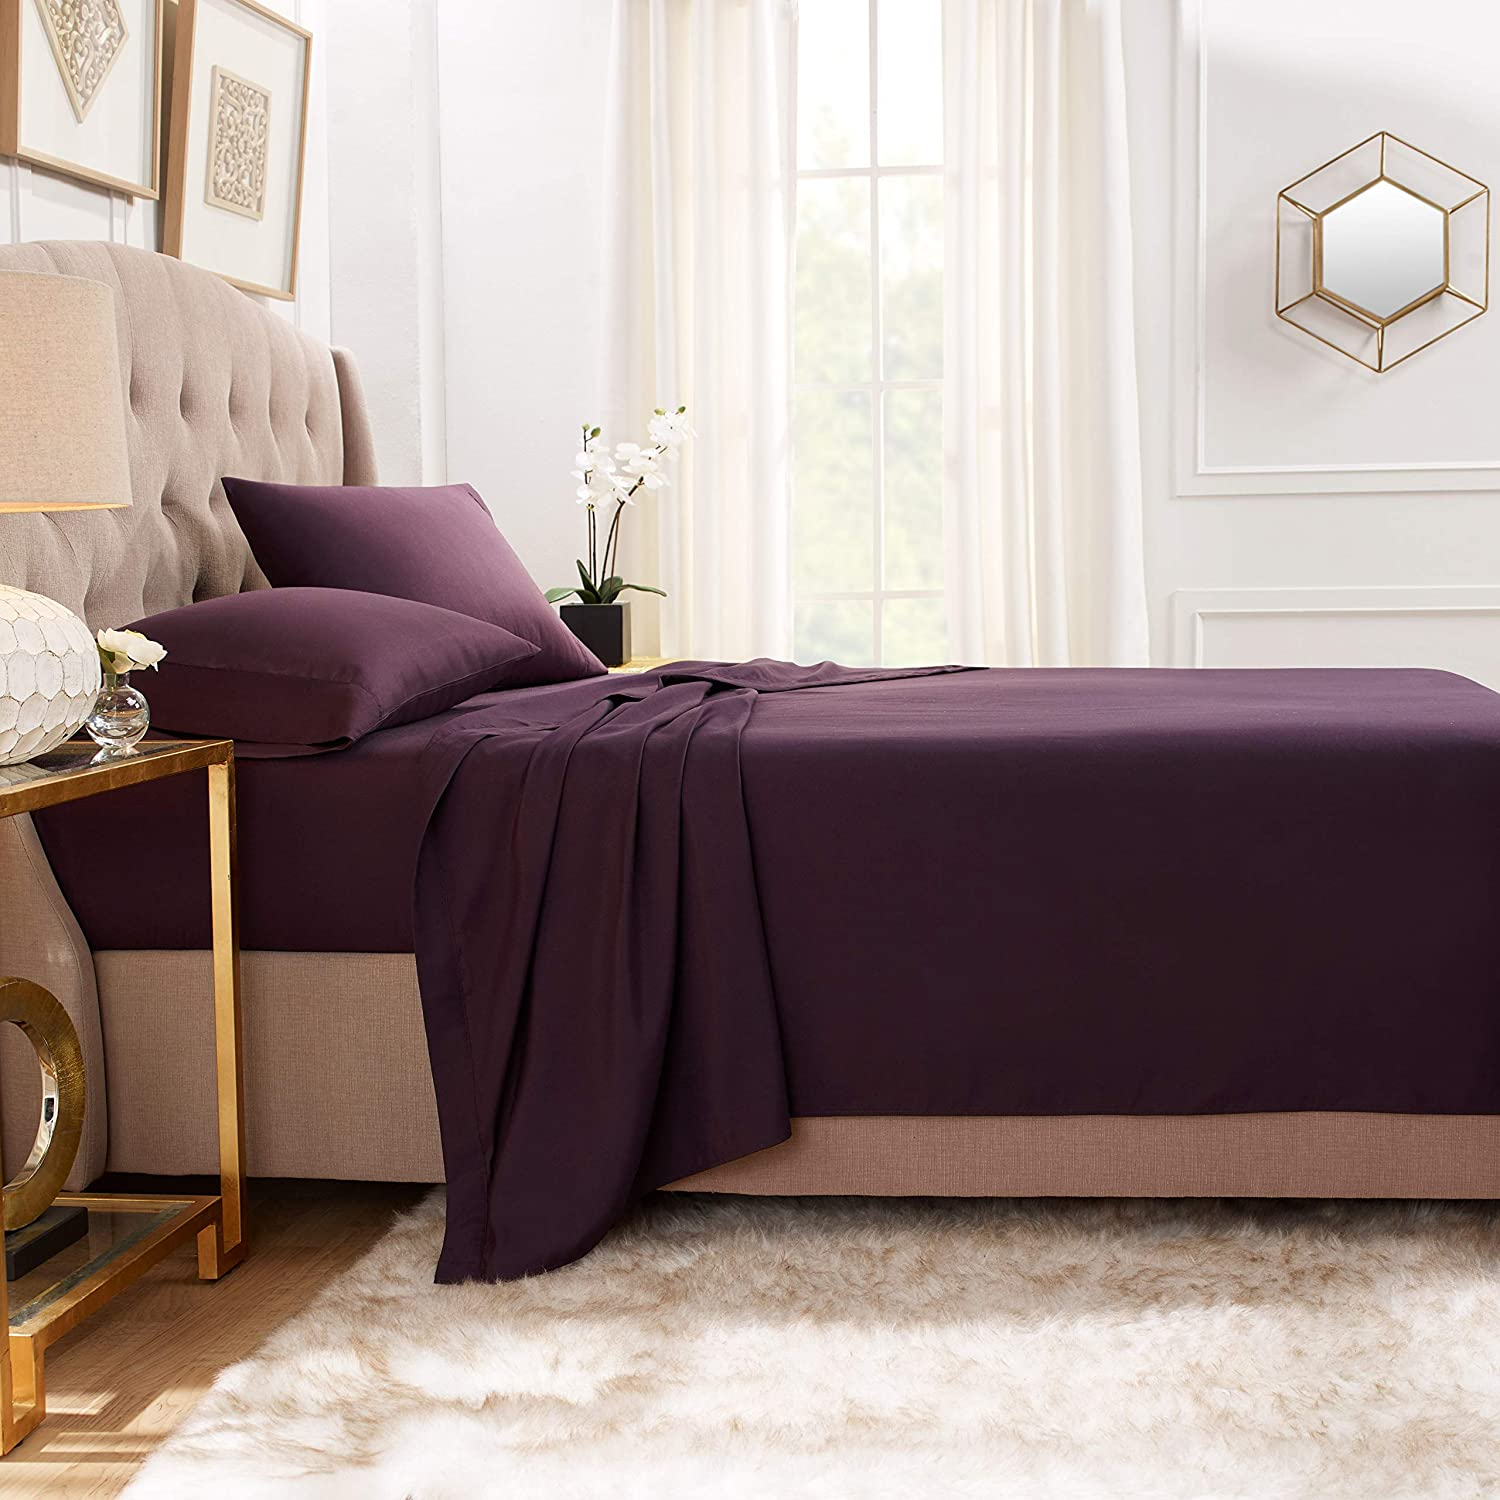 """Empyrean Bedding Premium Flat Sheet – """"110 GSM"""" Double Brushed Microfiber Extra Thick and Comfortable Flat Sheets, Luxurious & Soft Hotel Single Top Bed Sheet Hypoallergenic, Twin, Purple Eggplant"""